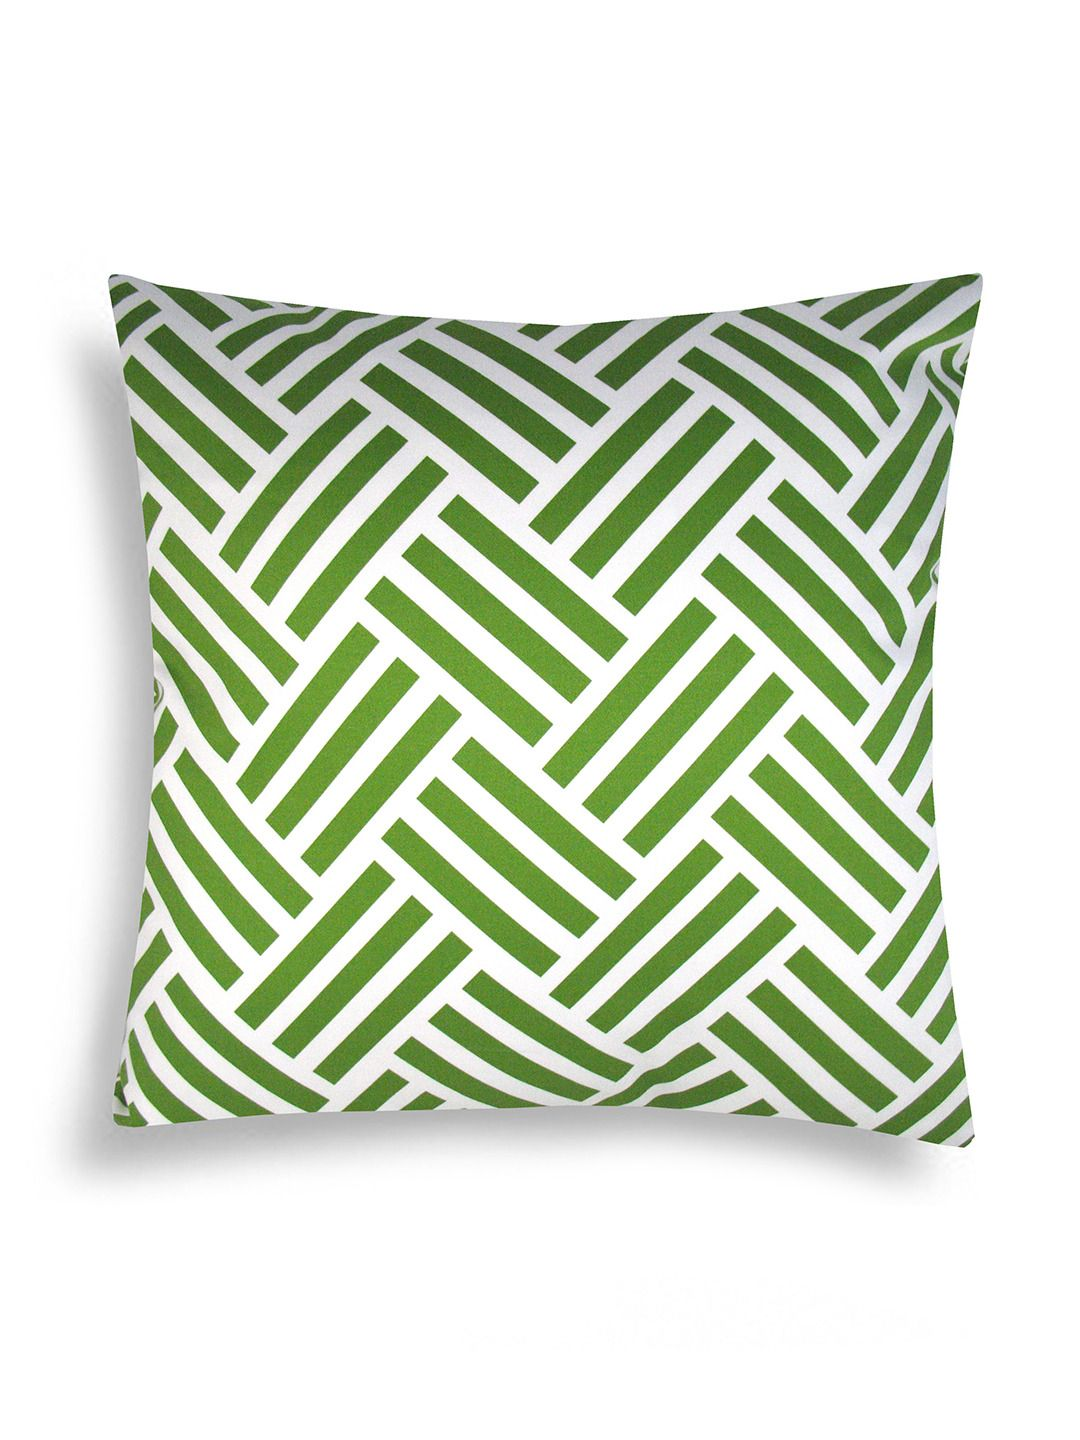 Art Green Throw Pillow by domusworks at Gilt Green throw